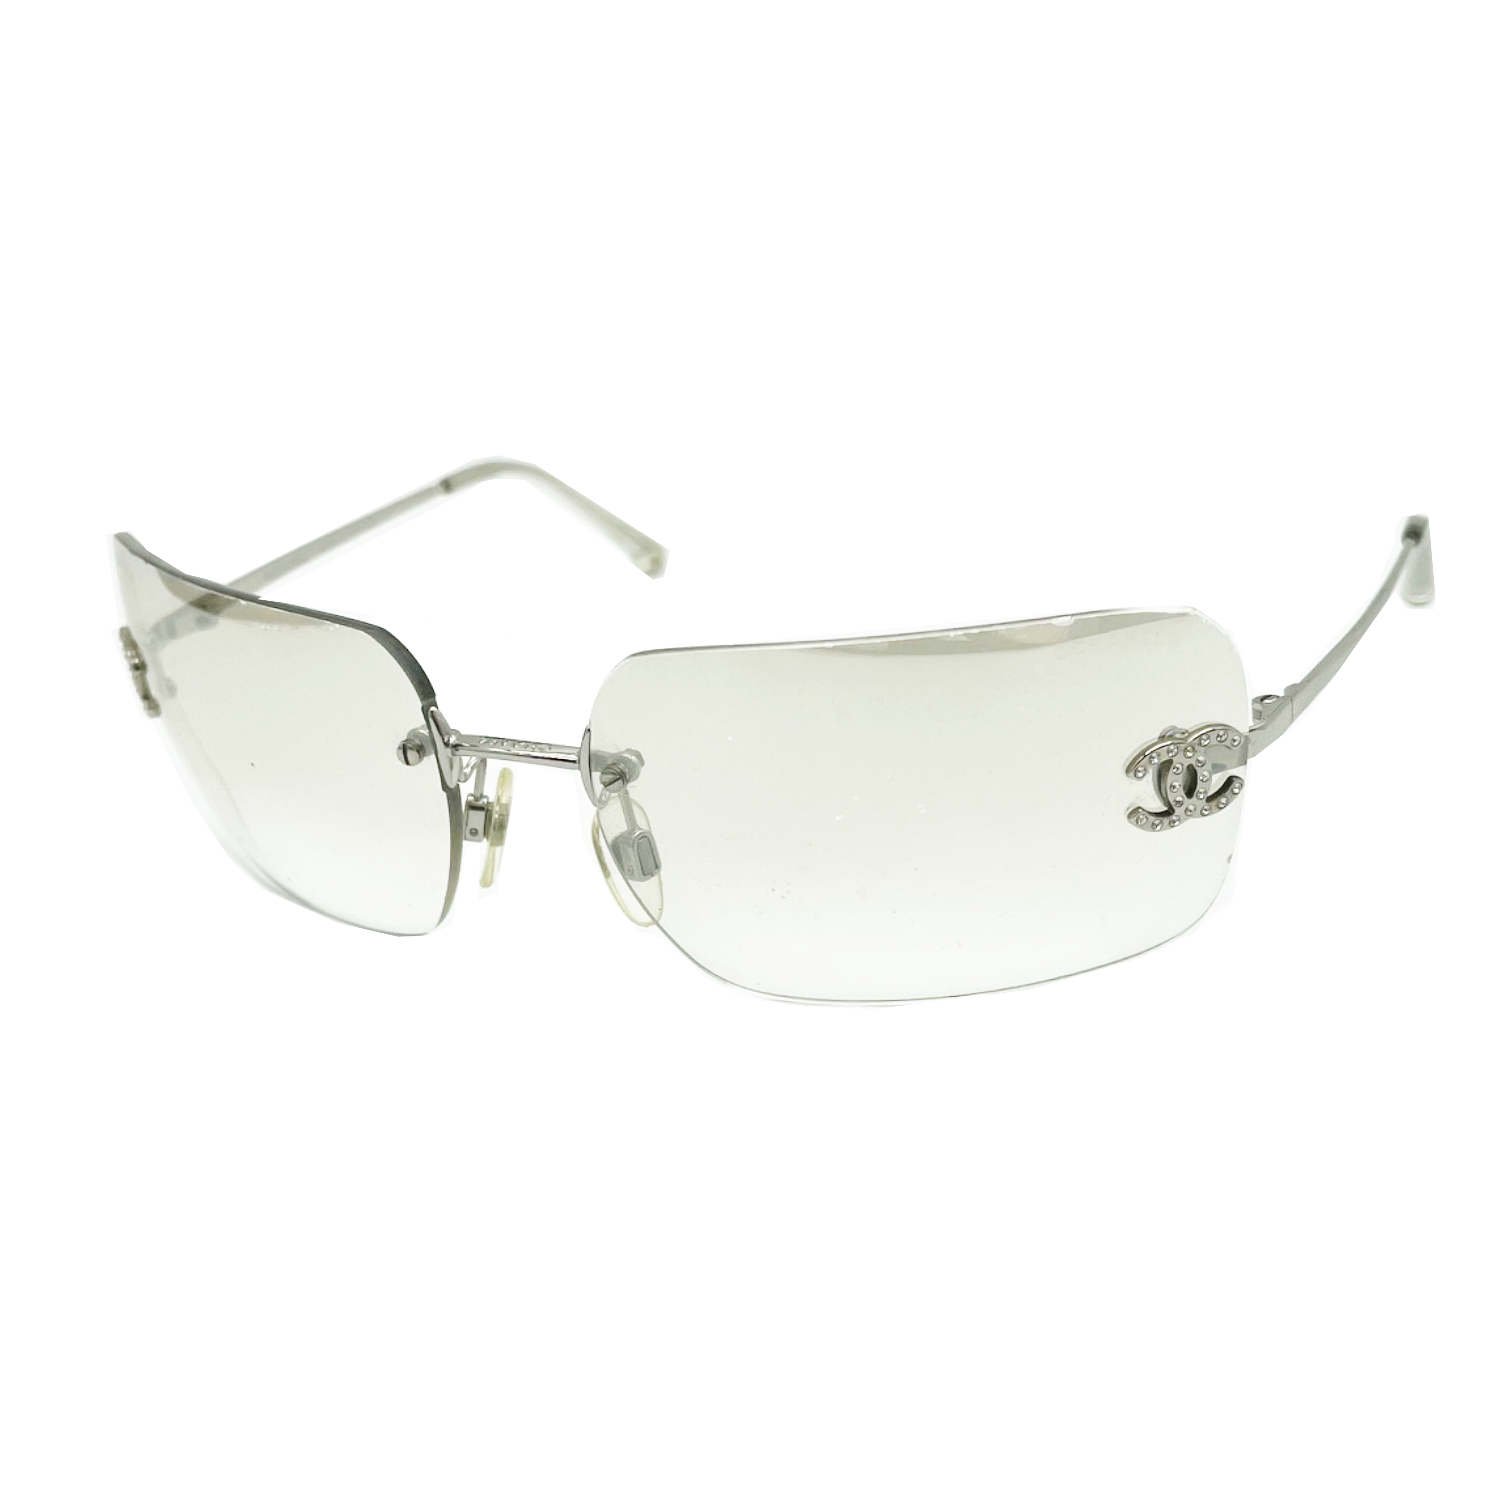 Vintage Chanel Diamante Rimless Sunglasses in Clear/Silver | NITRYL